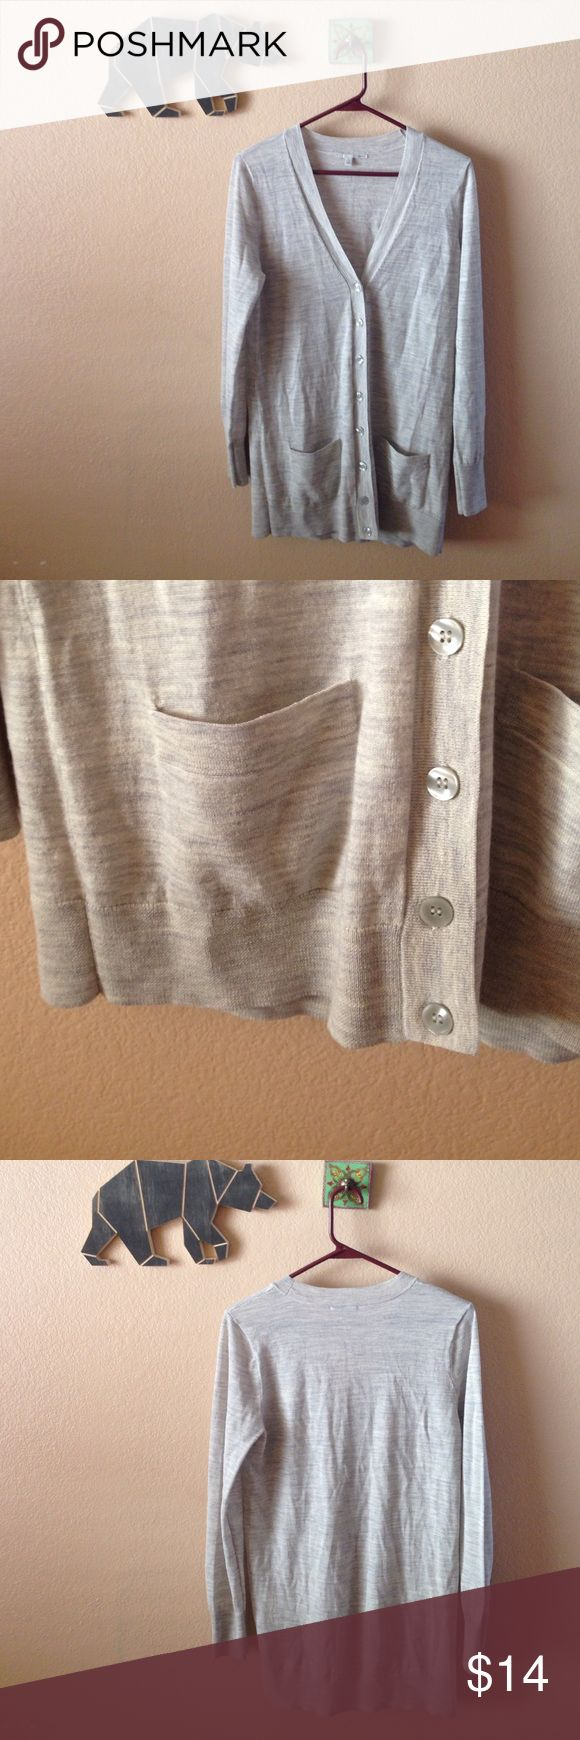 Halogen Petite Cardigan Soft and sweet button up cardigan by Halogen. Comes from a smoke and pet free home. Halogen Tops Tees - Long Sleeve